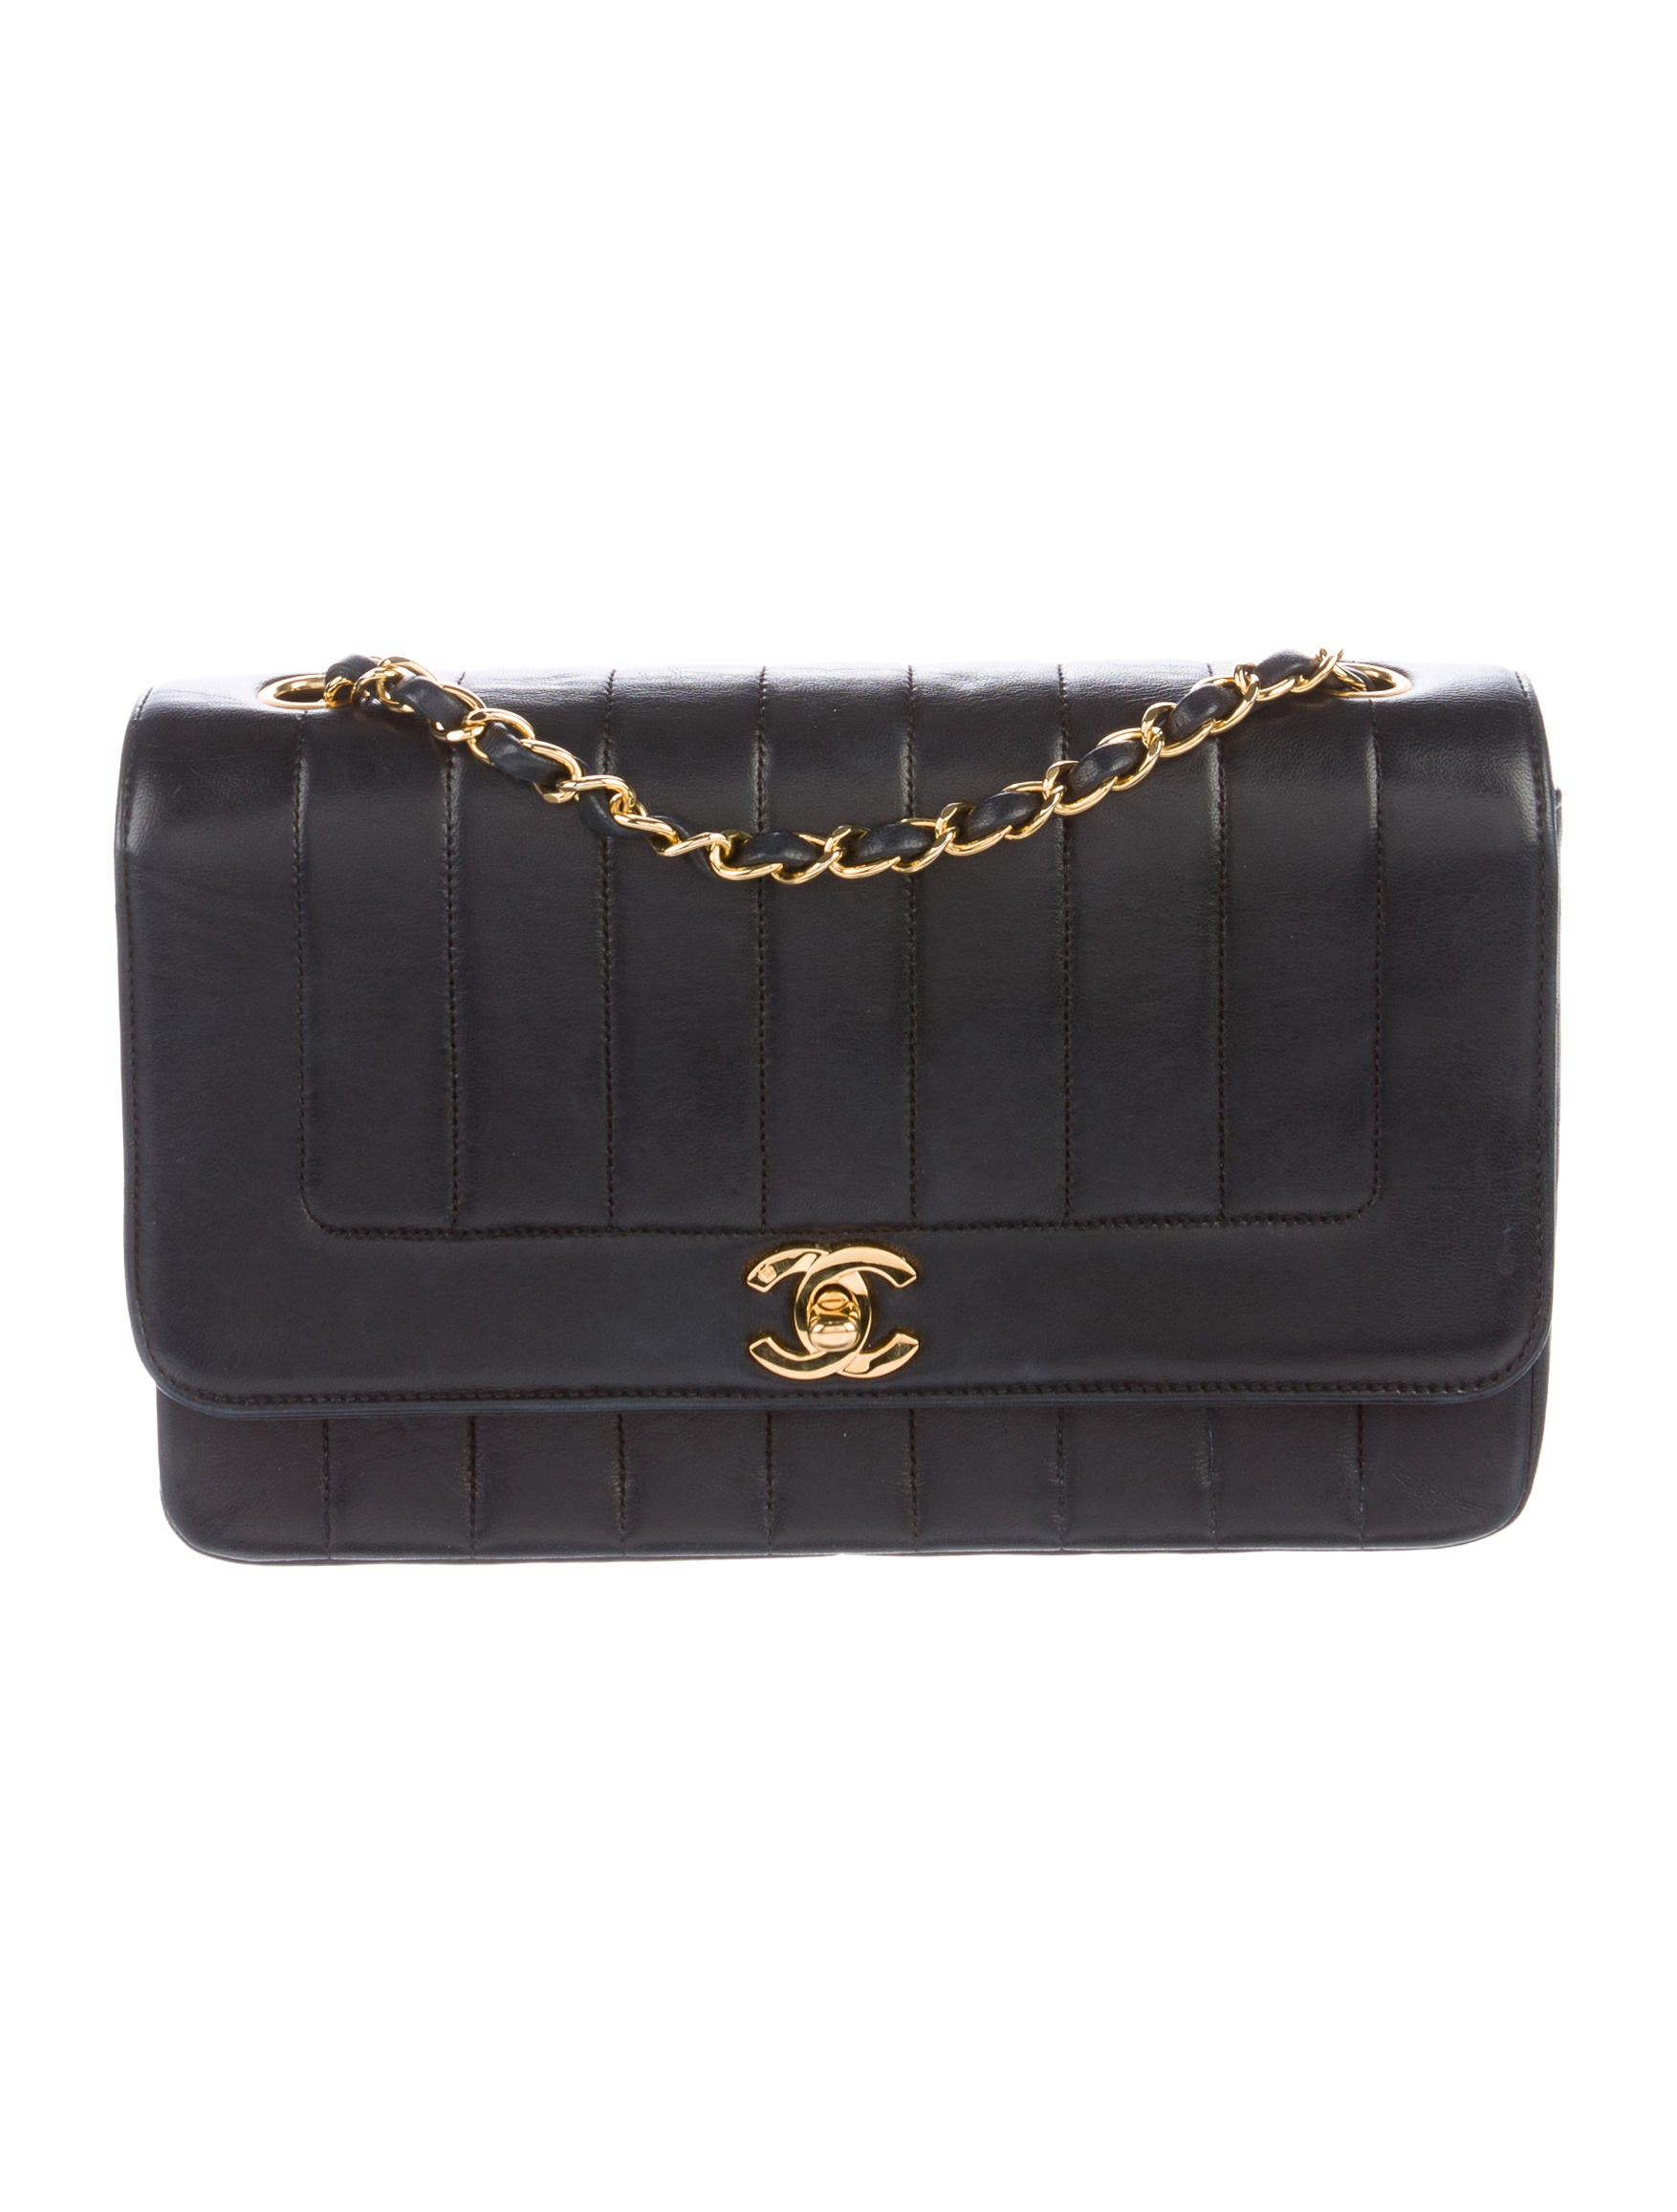 chanel vintage medium diana flap bag handbags